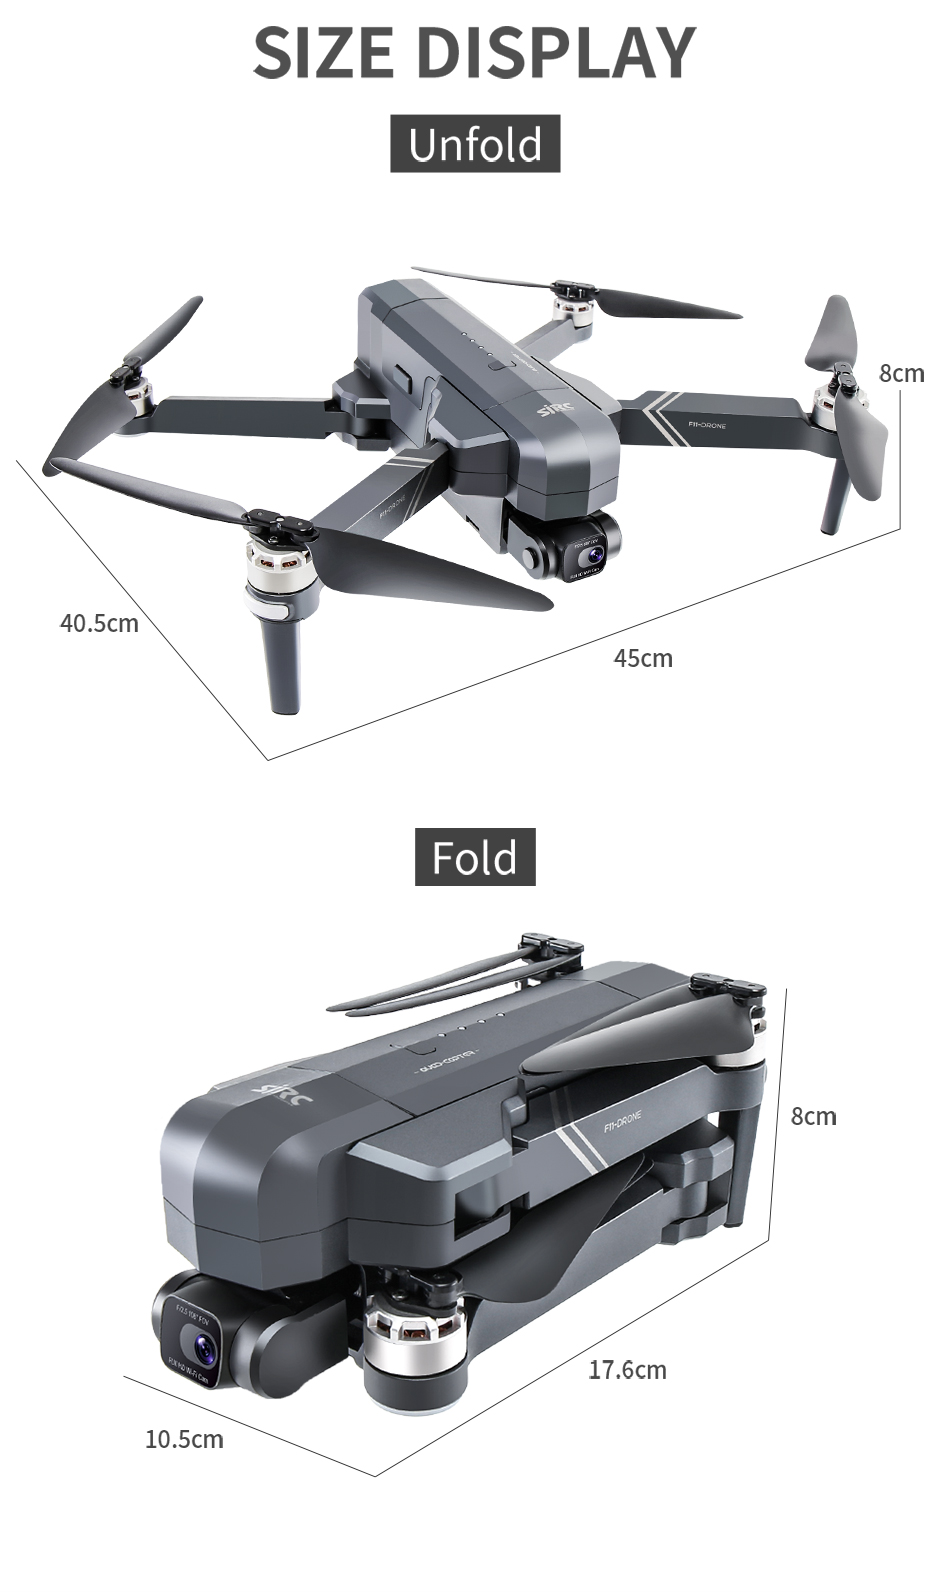 U6b6fe09219df476ca9dadea8689a88a5l - NEW SJRC F11S 4K PRO Video Camera Drone Professional GPS 2Axis Mechanical EIS Gimbal Quadcopter Brushless Dron Max Flight RC 3KM